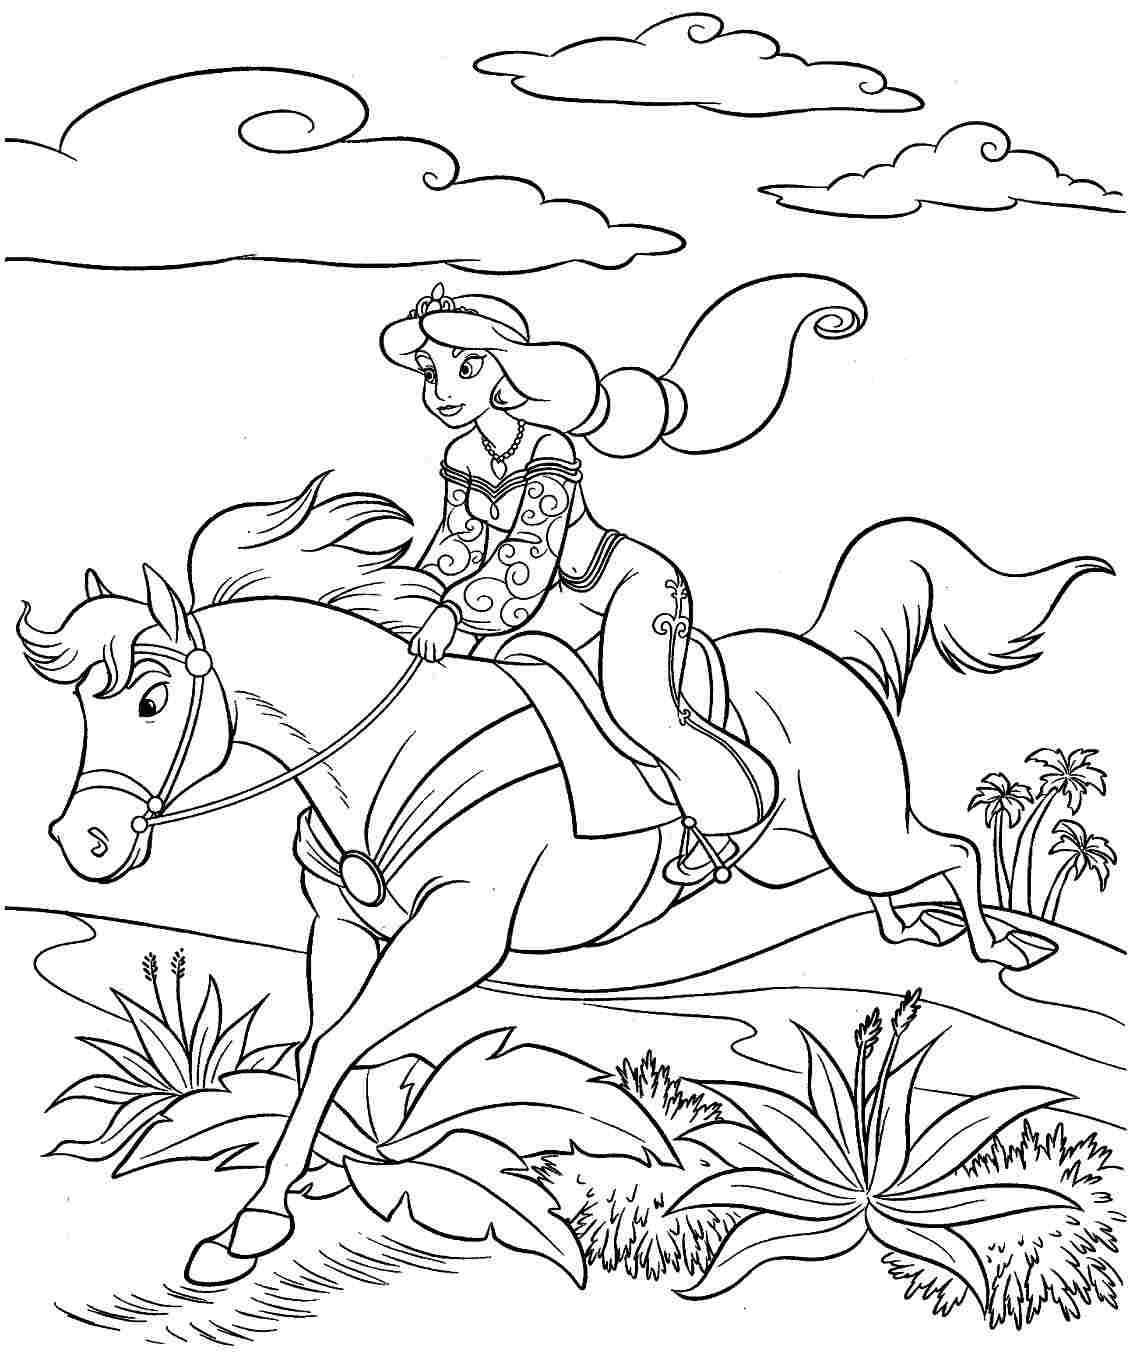 Princess Riding Horse Coloring Page Through The Thousands Of Pictures Online With Regards Horse Coloring Pages Princess Coloring Pages Cartoon Coloring Pages